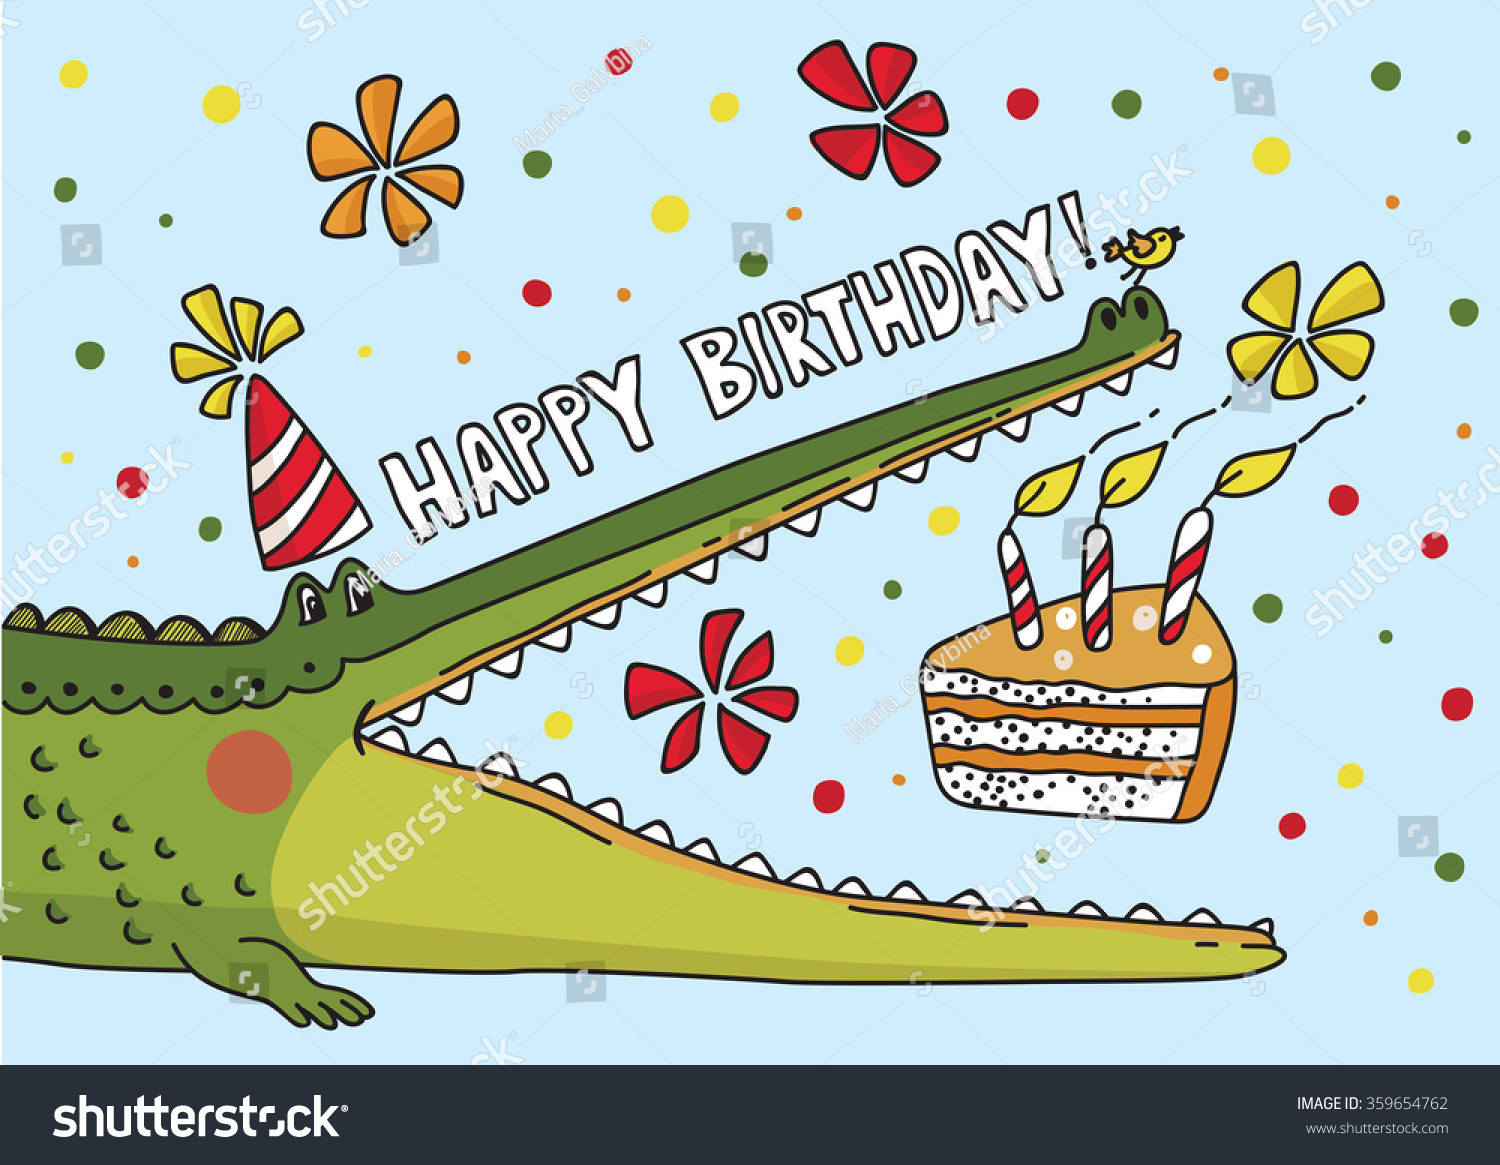 HAPPY BIRTHDAY ALLIGATORS Stock-vector-vector-illustration-with-cute-crocodile-birthday-card-359654762